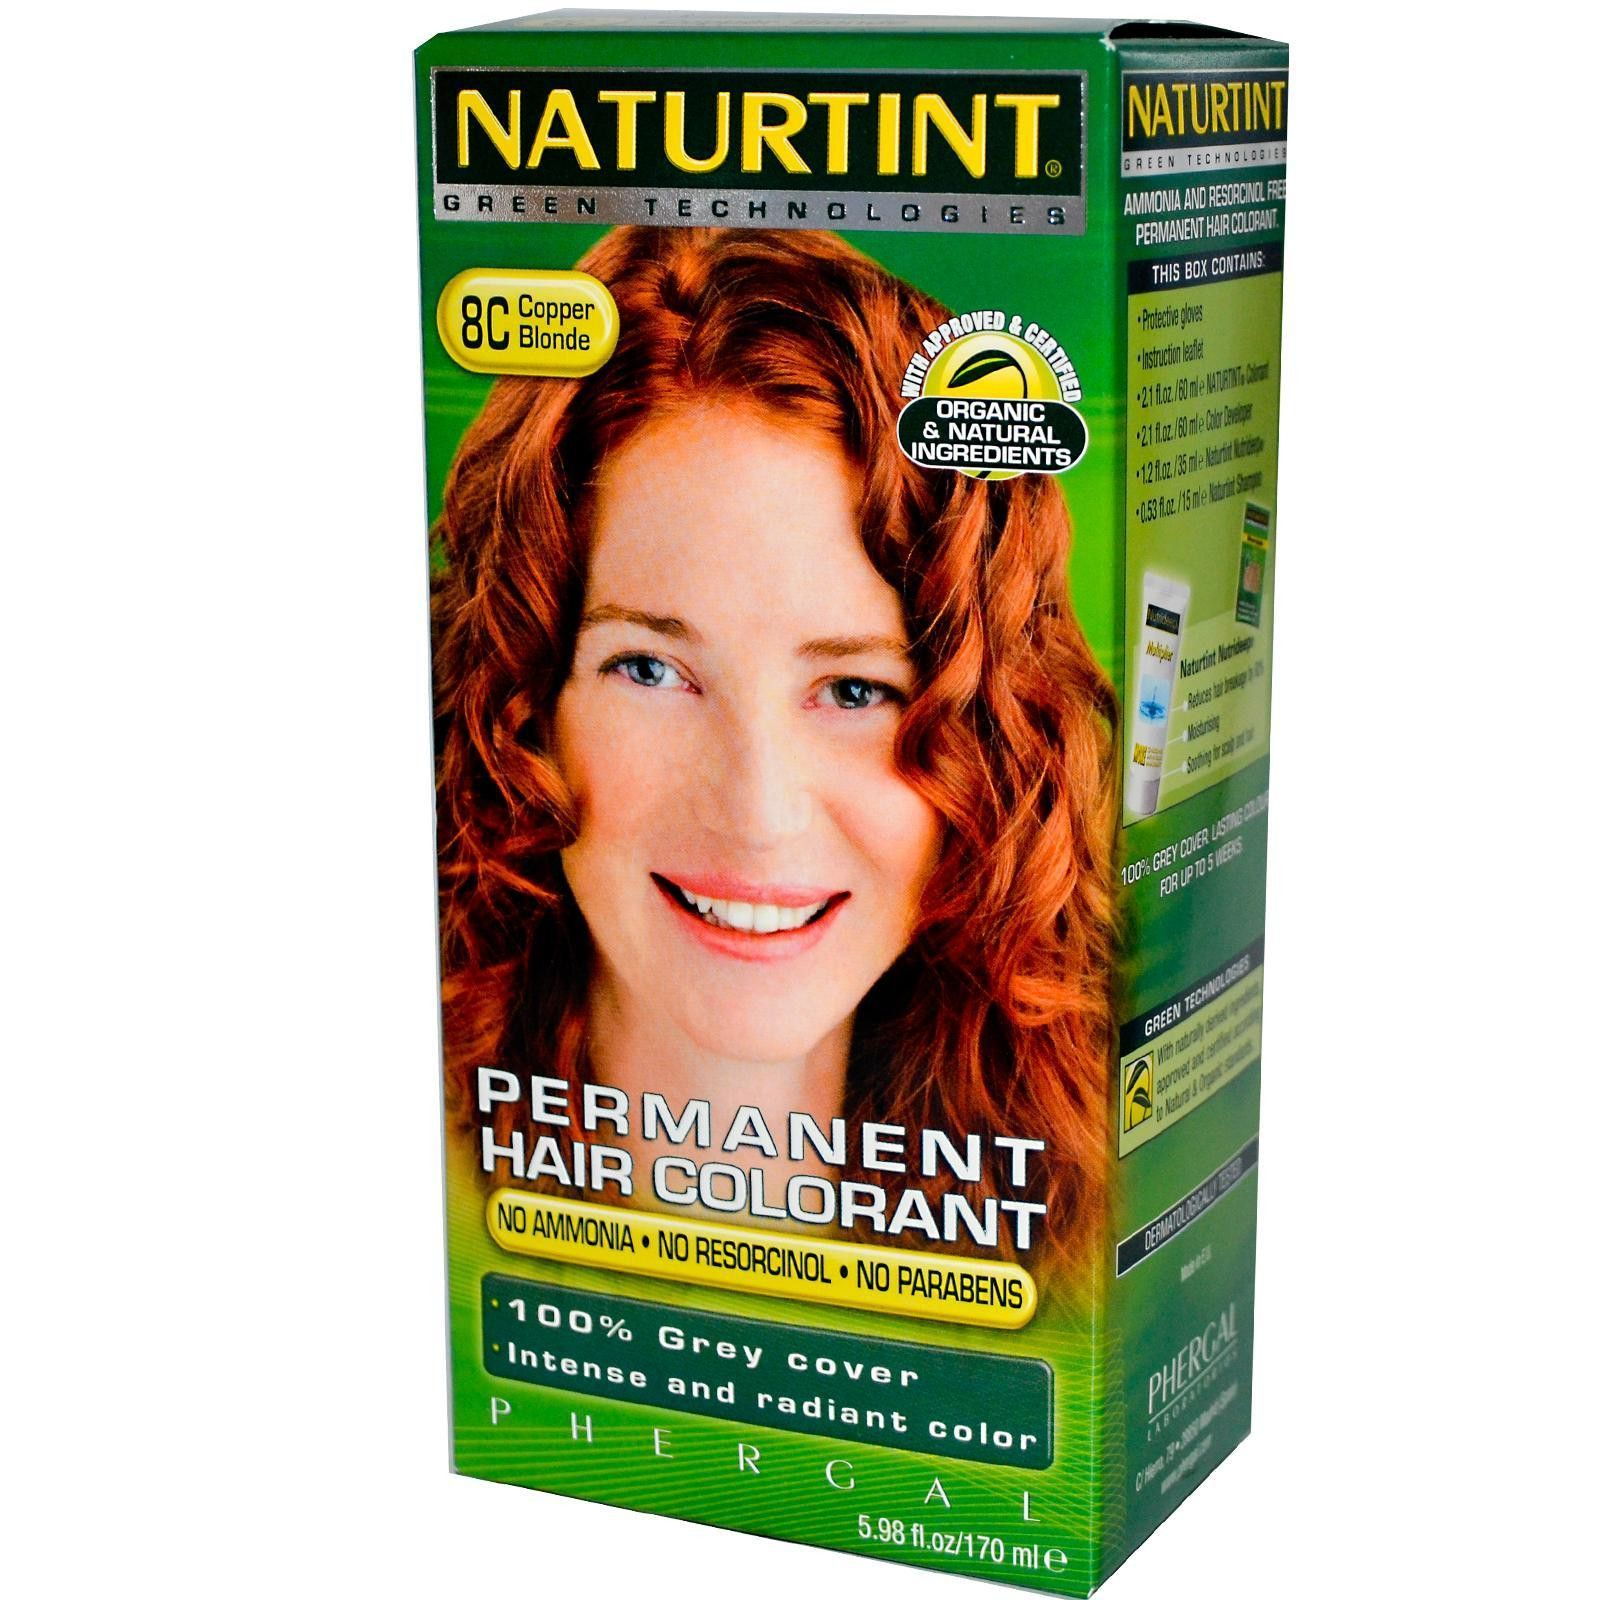 Naturtint 8c Copper Blonde Hair Color 1xkit Hairstylescolor